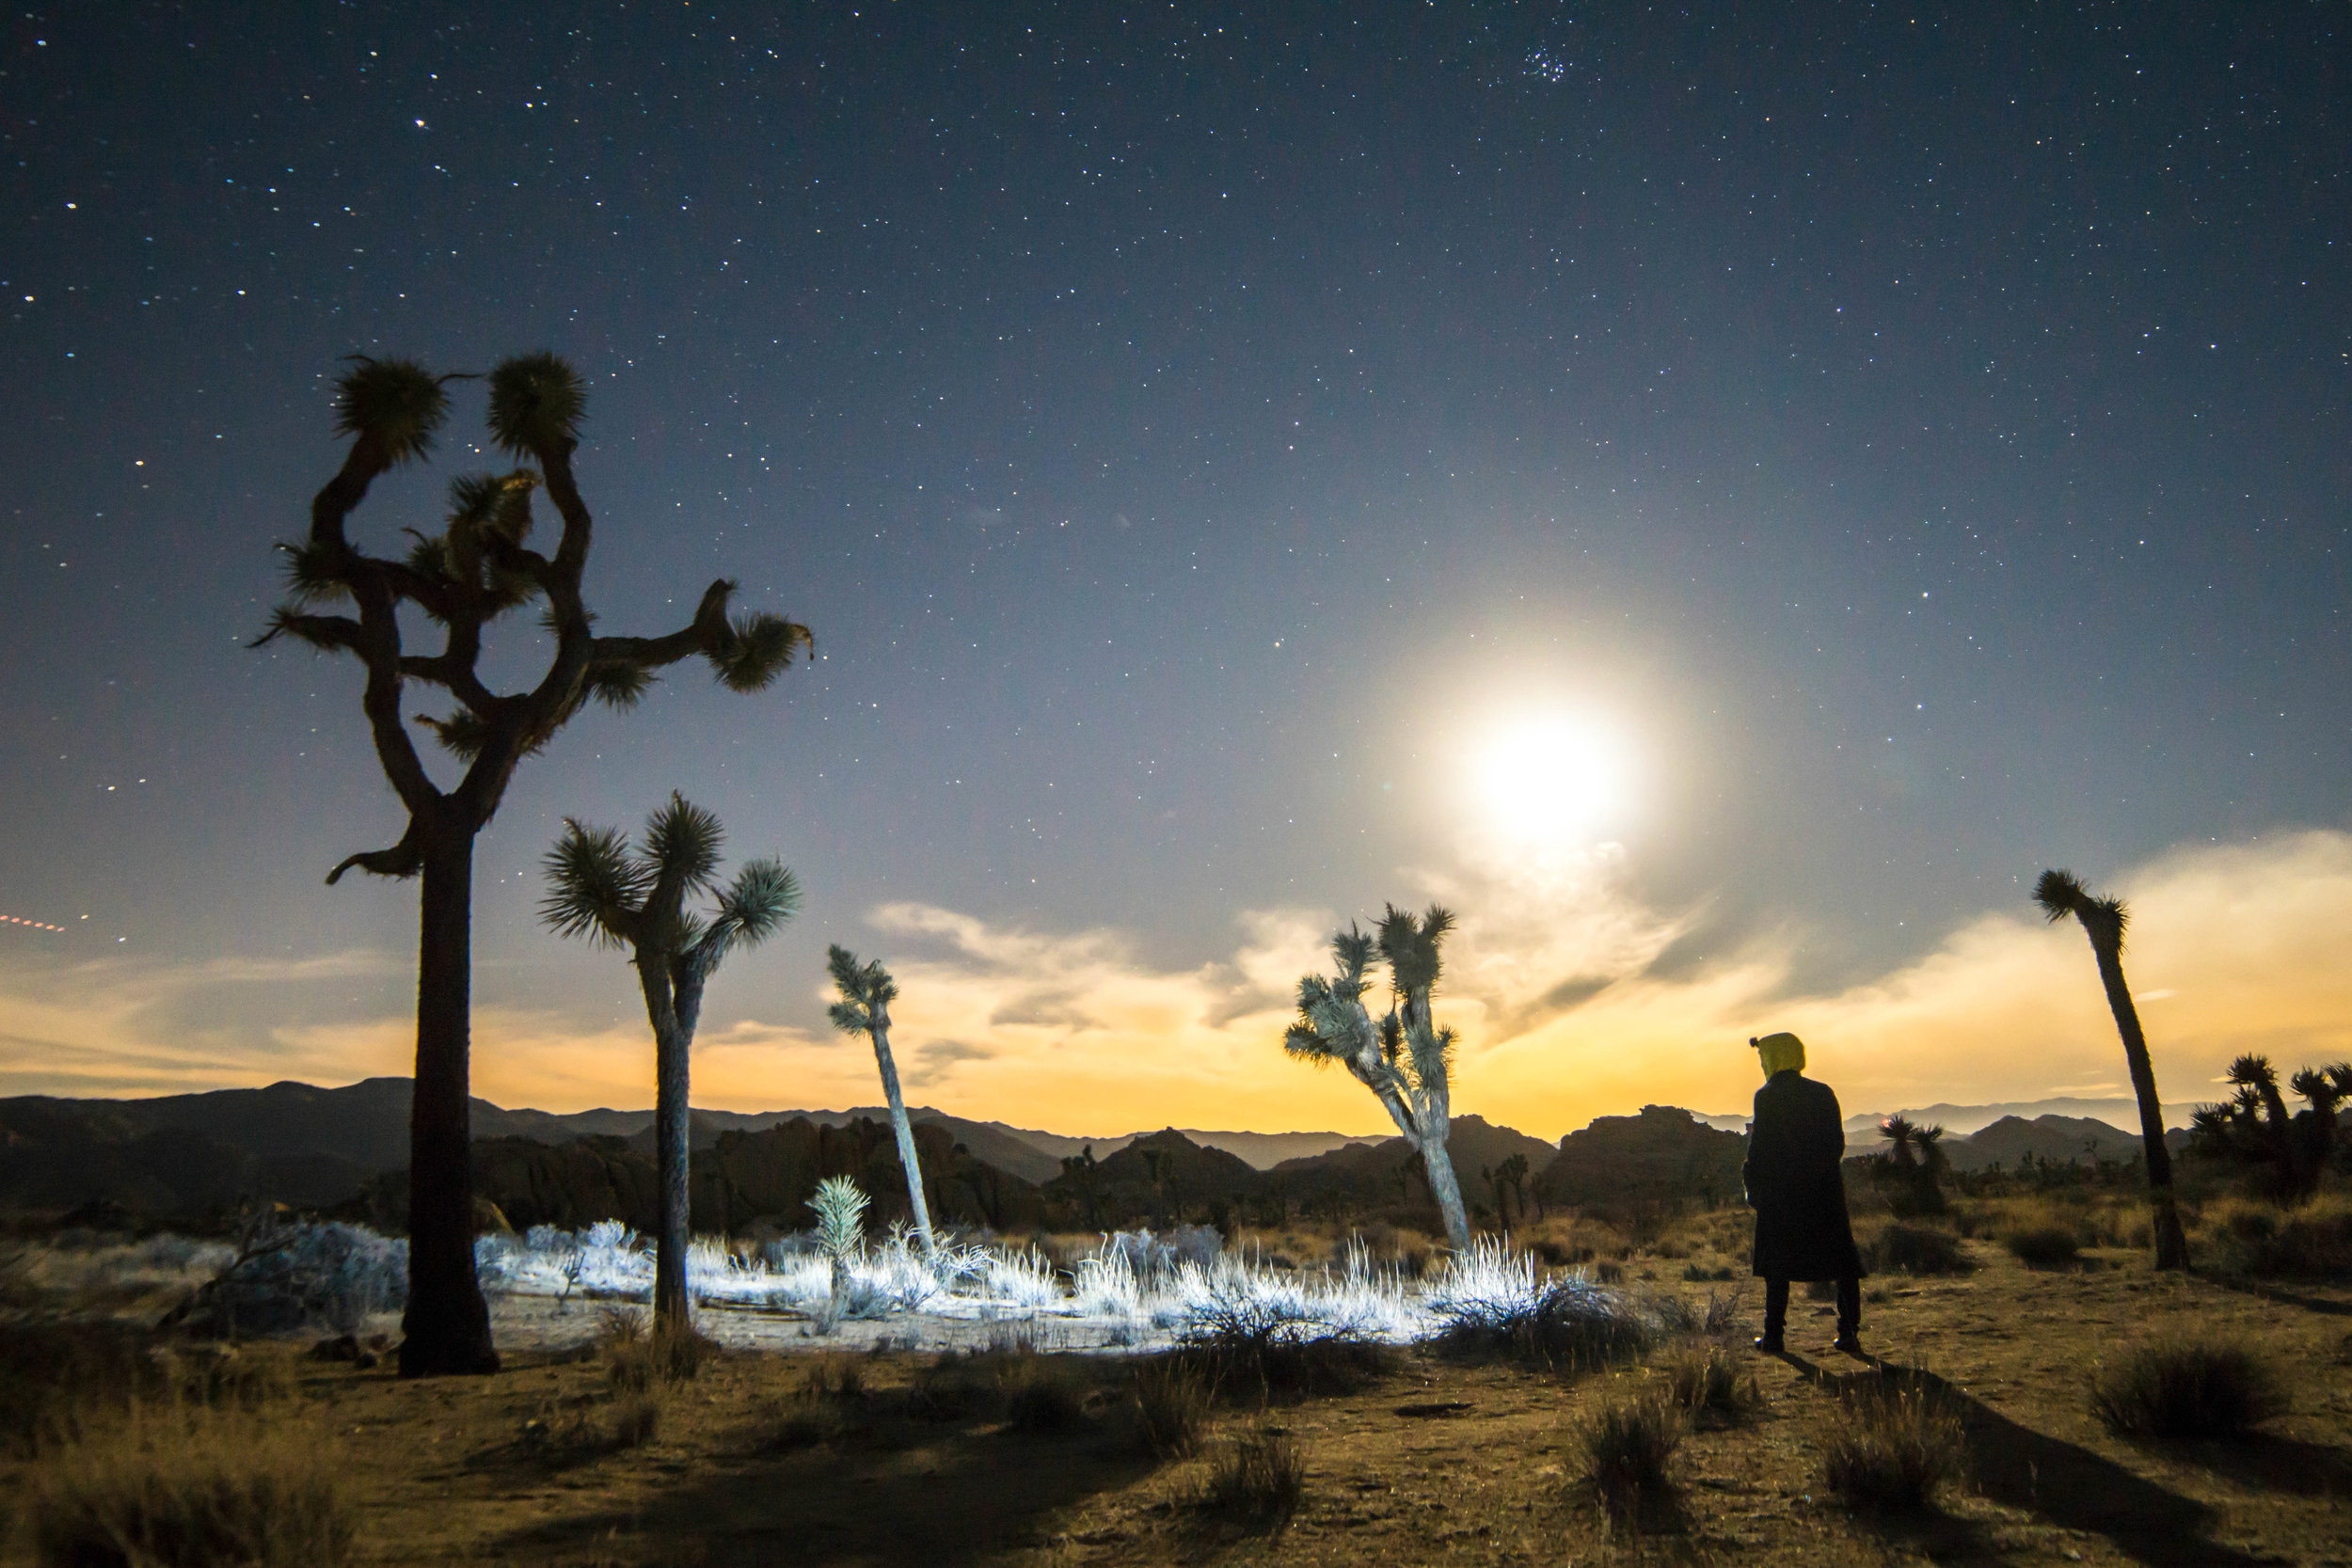 This is the best time to experience this foreign world; the funky silhouettes of the Joshua Trees reaching for the vast starry sky above appear truly extraterrestrial.